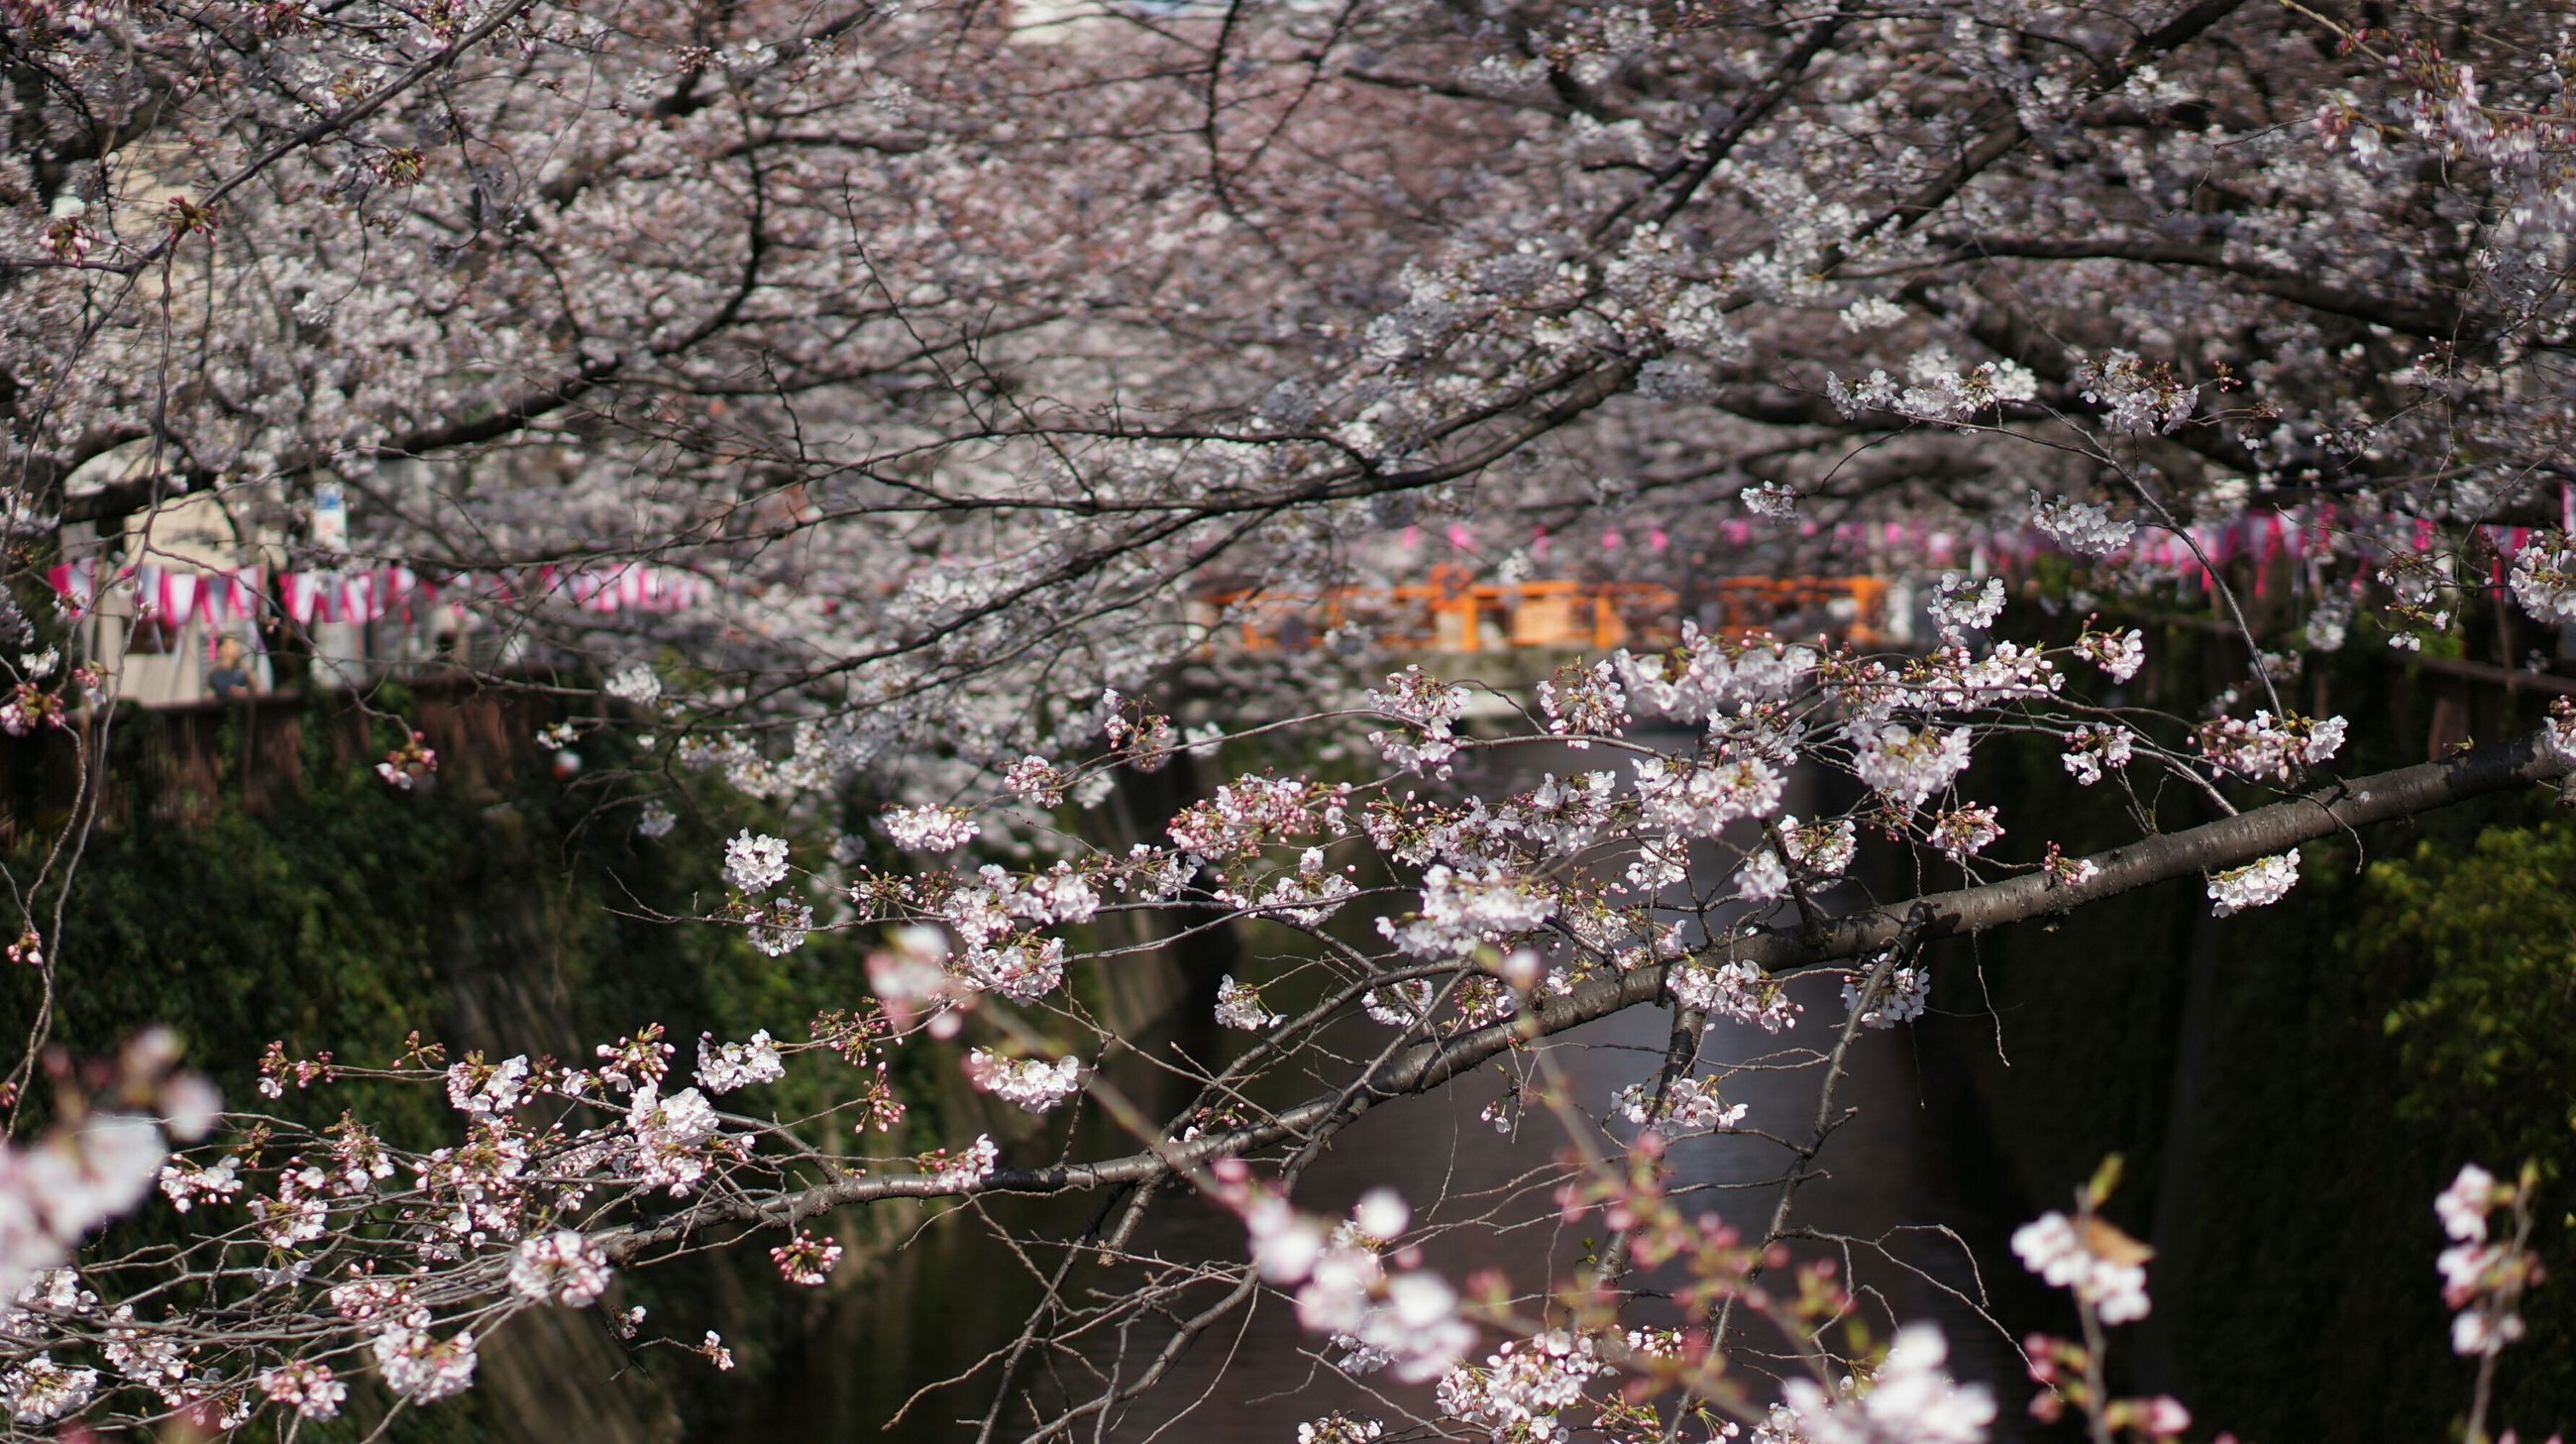 flower, tree, freshness, growth, branch, fragility, cherry blossom, blossom, beauty in nature, cherry tree, pink color, nature, in bloom, springtime, blooming, petal, park - man made space, outdoors, day, focus on foreground